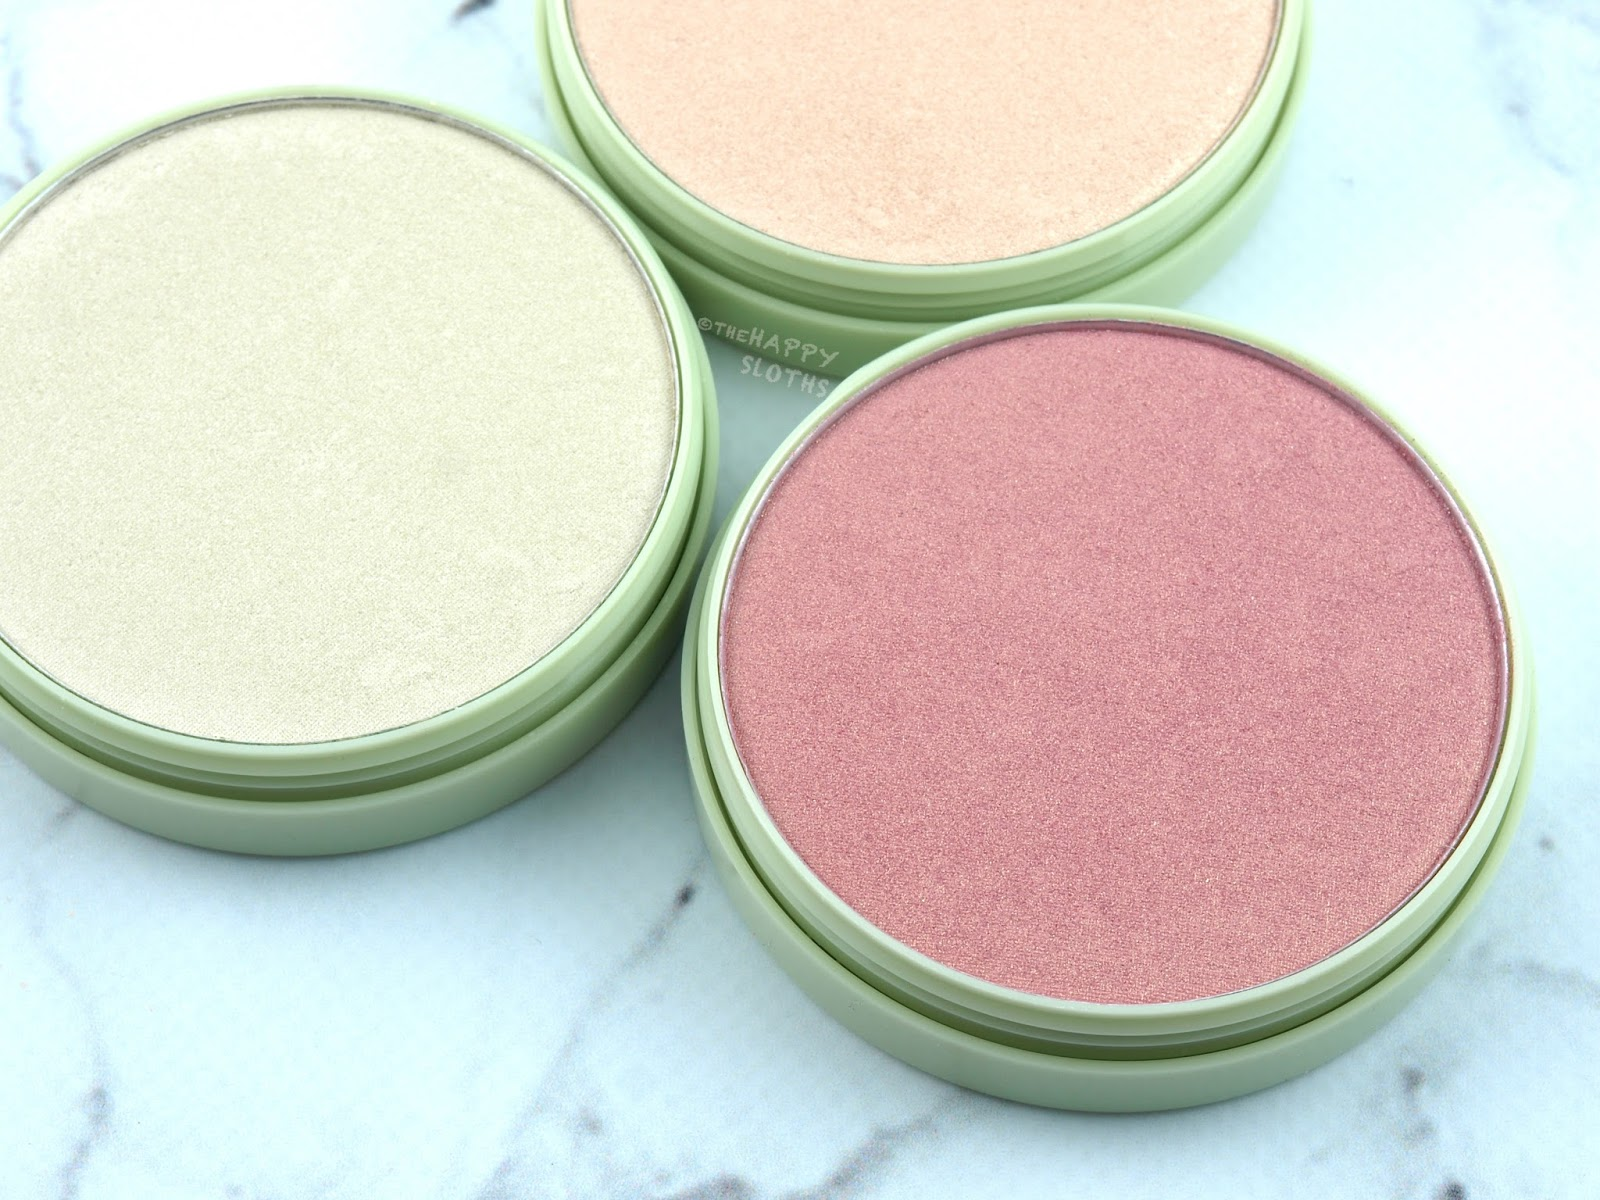 Pixi + Aspyn Ovard Glow-y Powder & Eye Accents: Review and Swatches